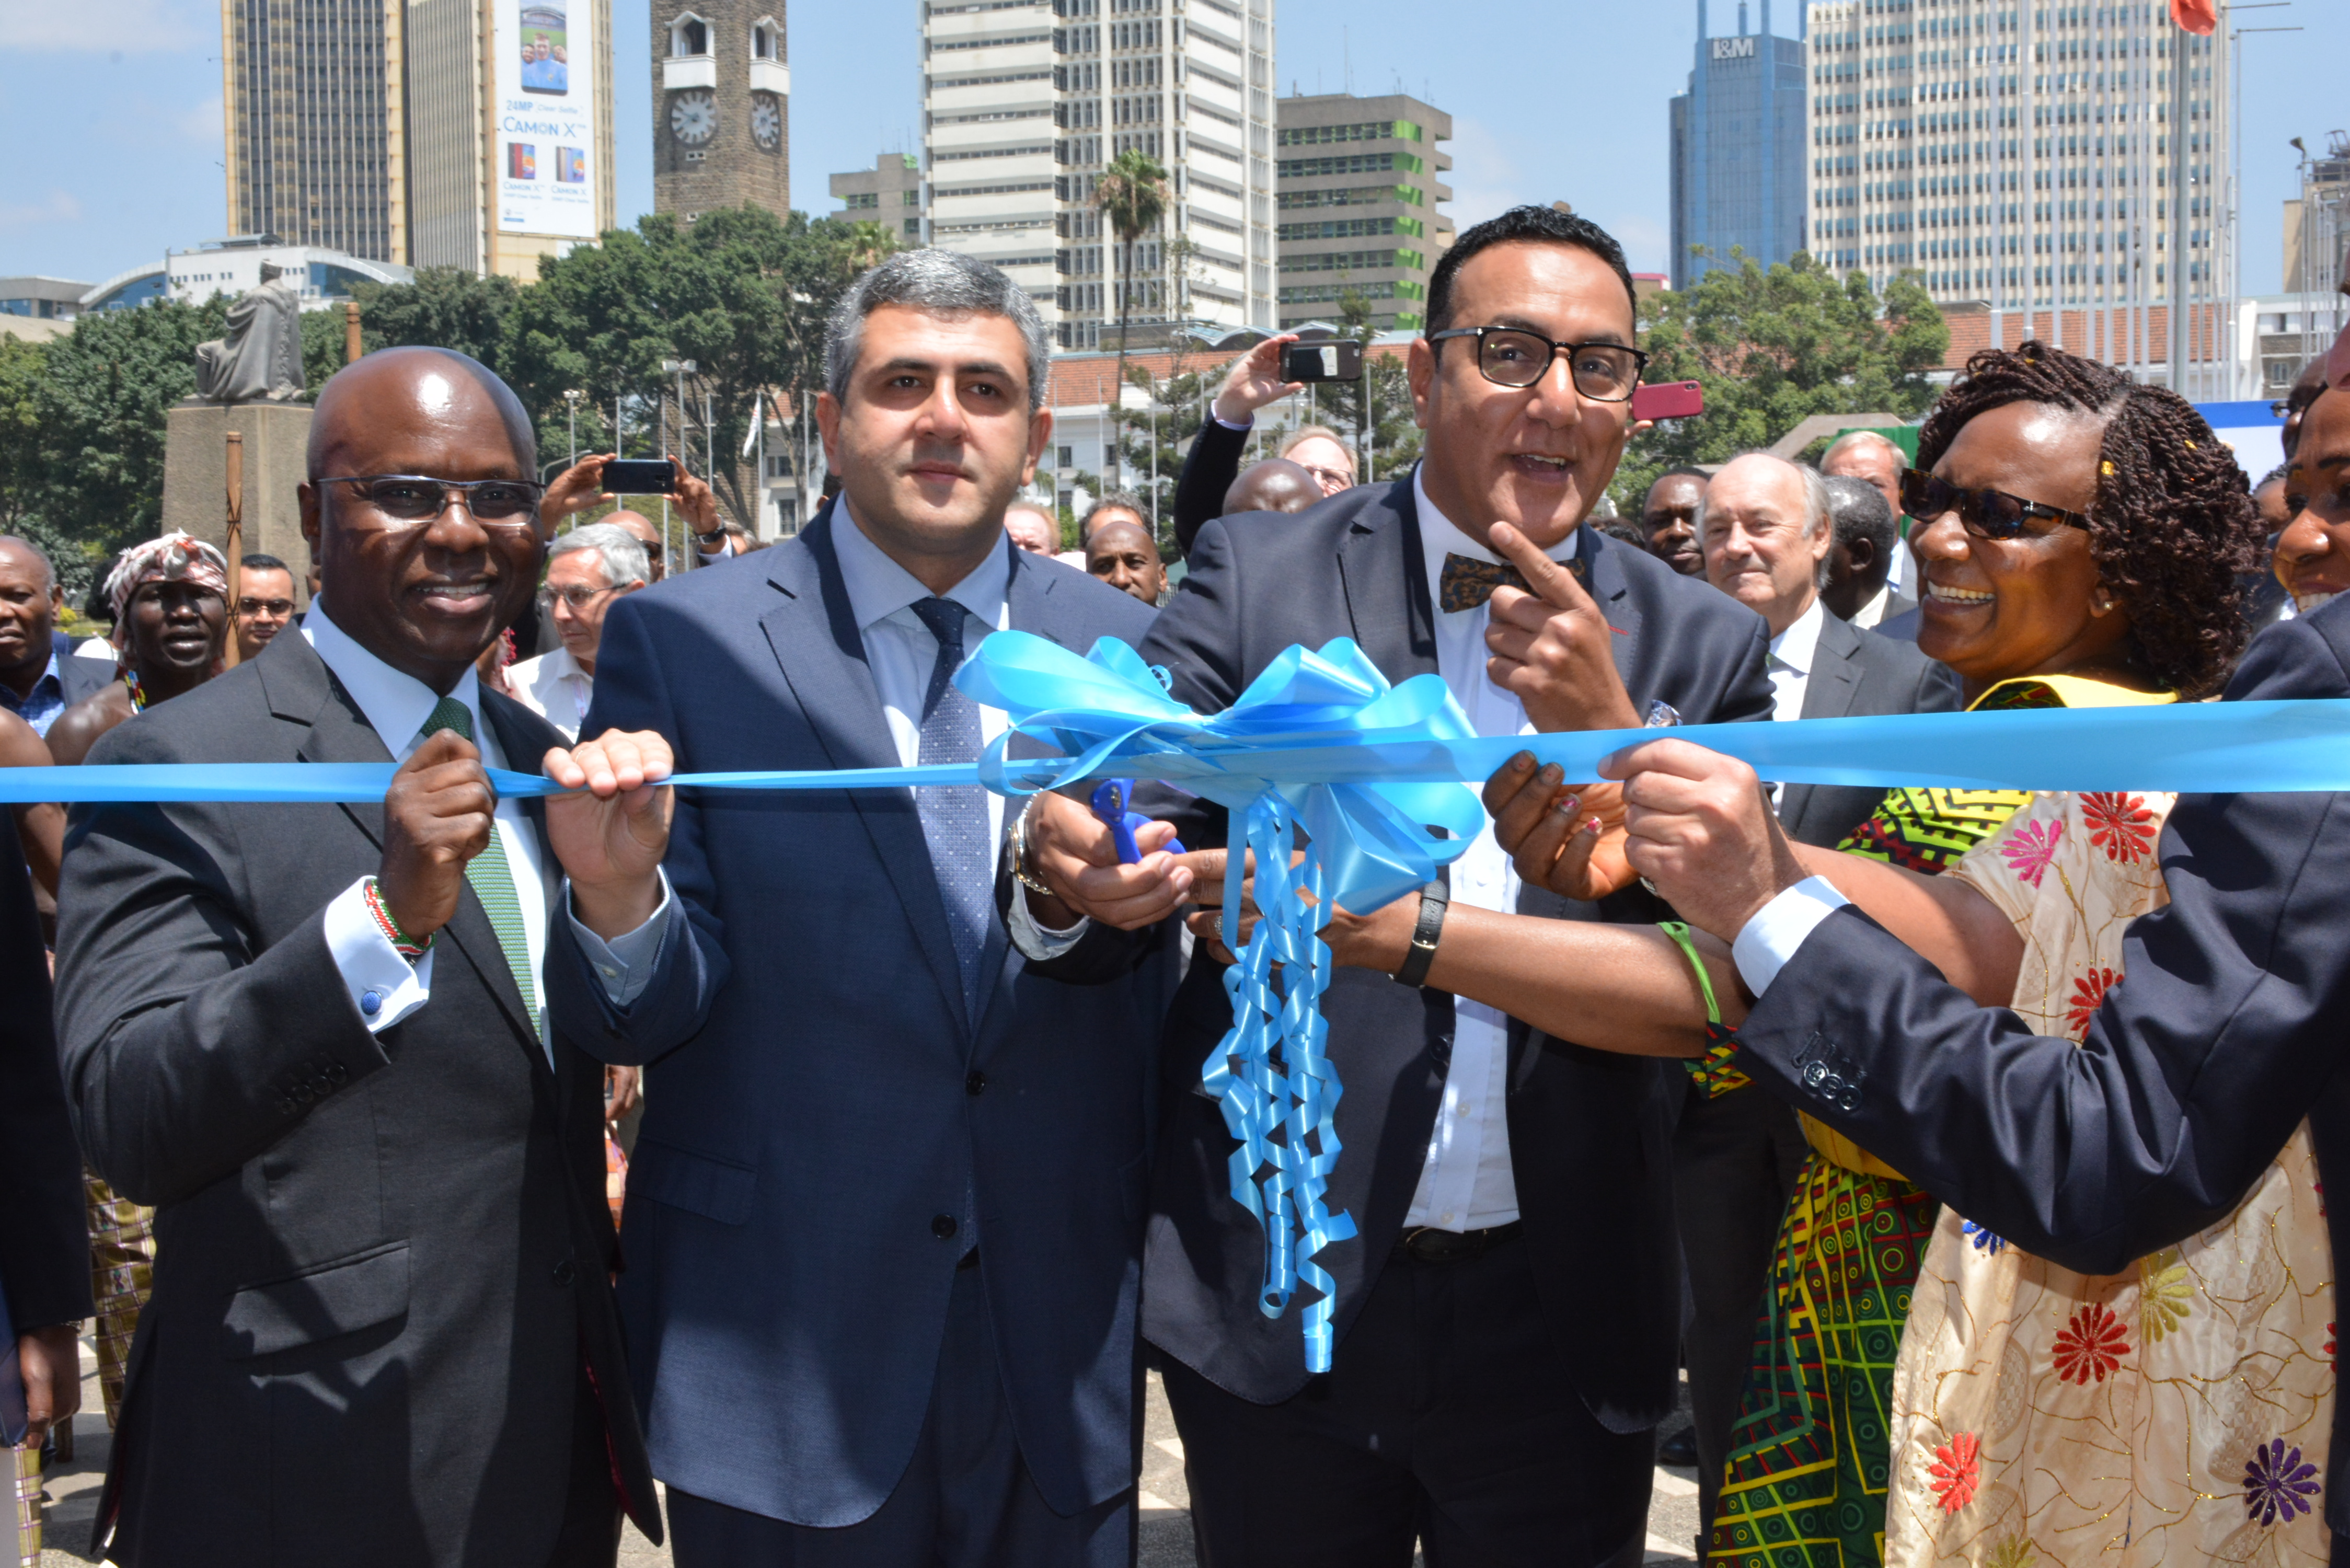 (From left to right) Kenya Tourism Board Chairman, Jimi Kariuki, UNWTO Sec. Gen. Zurab Pololikashvili, Tourism and Wildlife CS Najib Balala and Zimbabwe Tourism Minister, Priscah Mupfumira